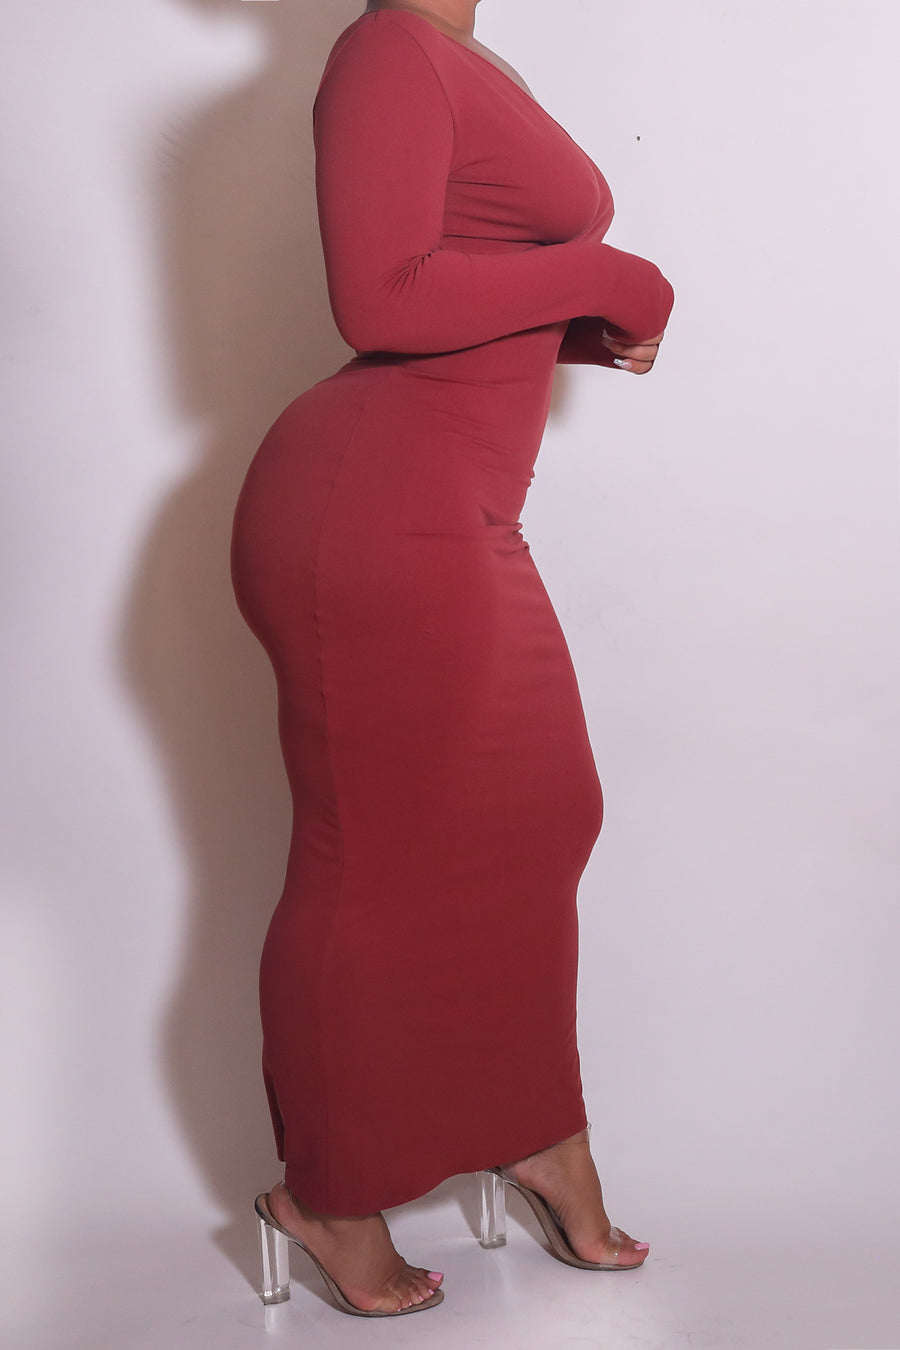 The Wrap Bodycon Maxi Dress in Rust - Babes And Felines | Specializing in Fashionable Staple Pieces for Every Shape and Size